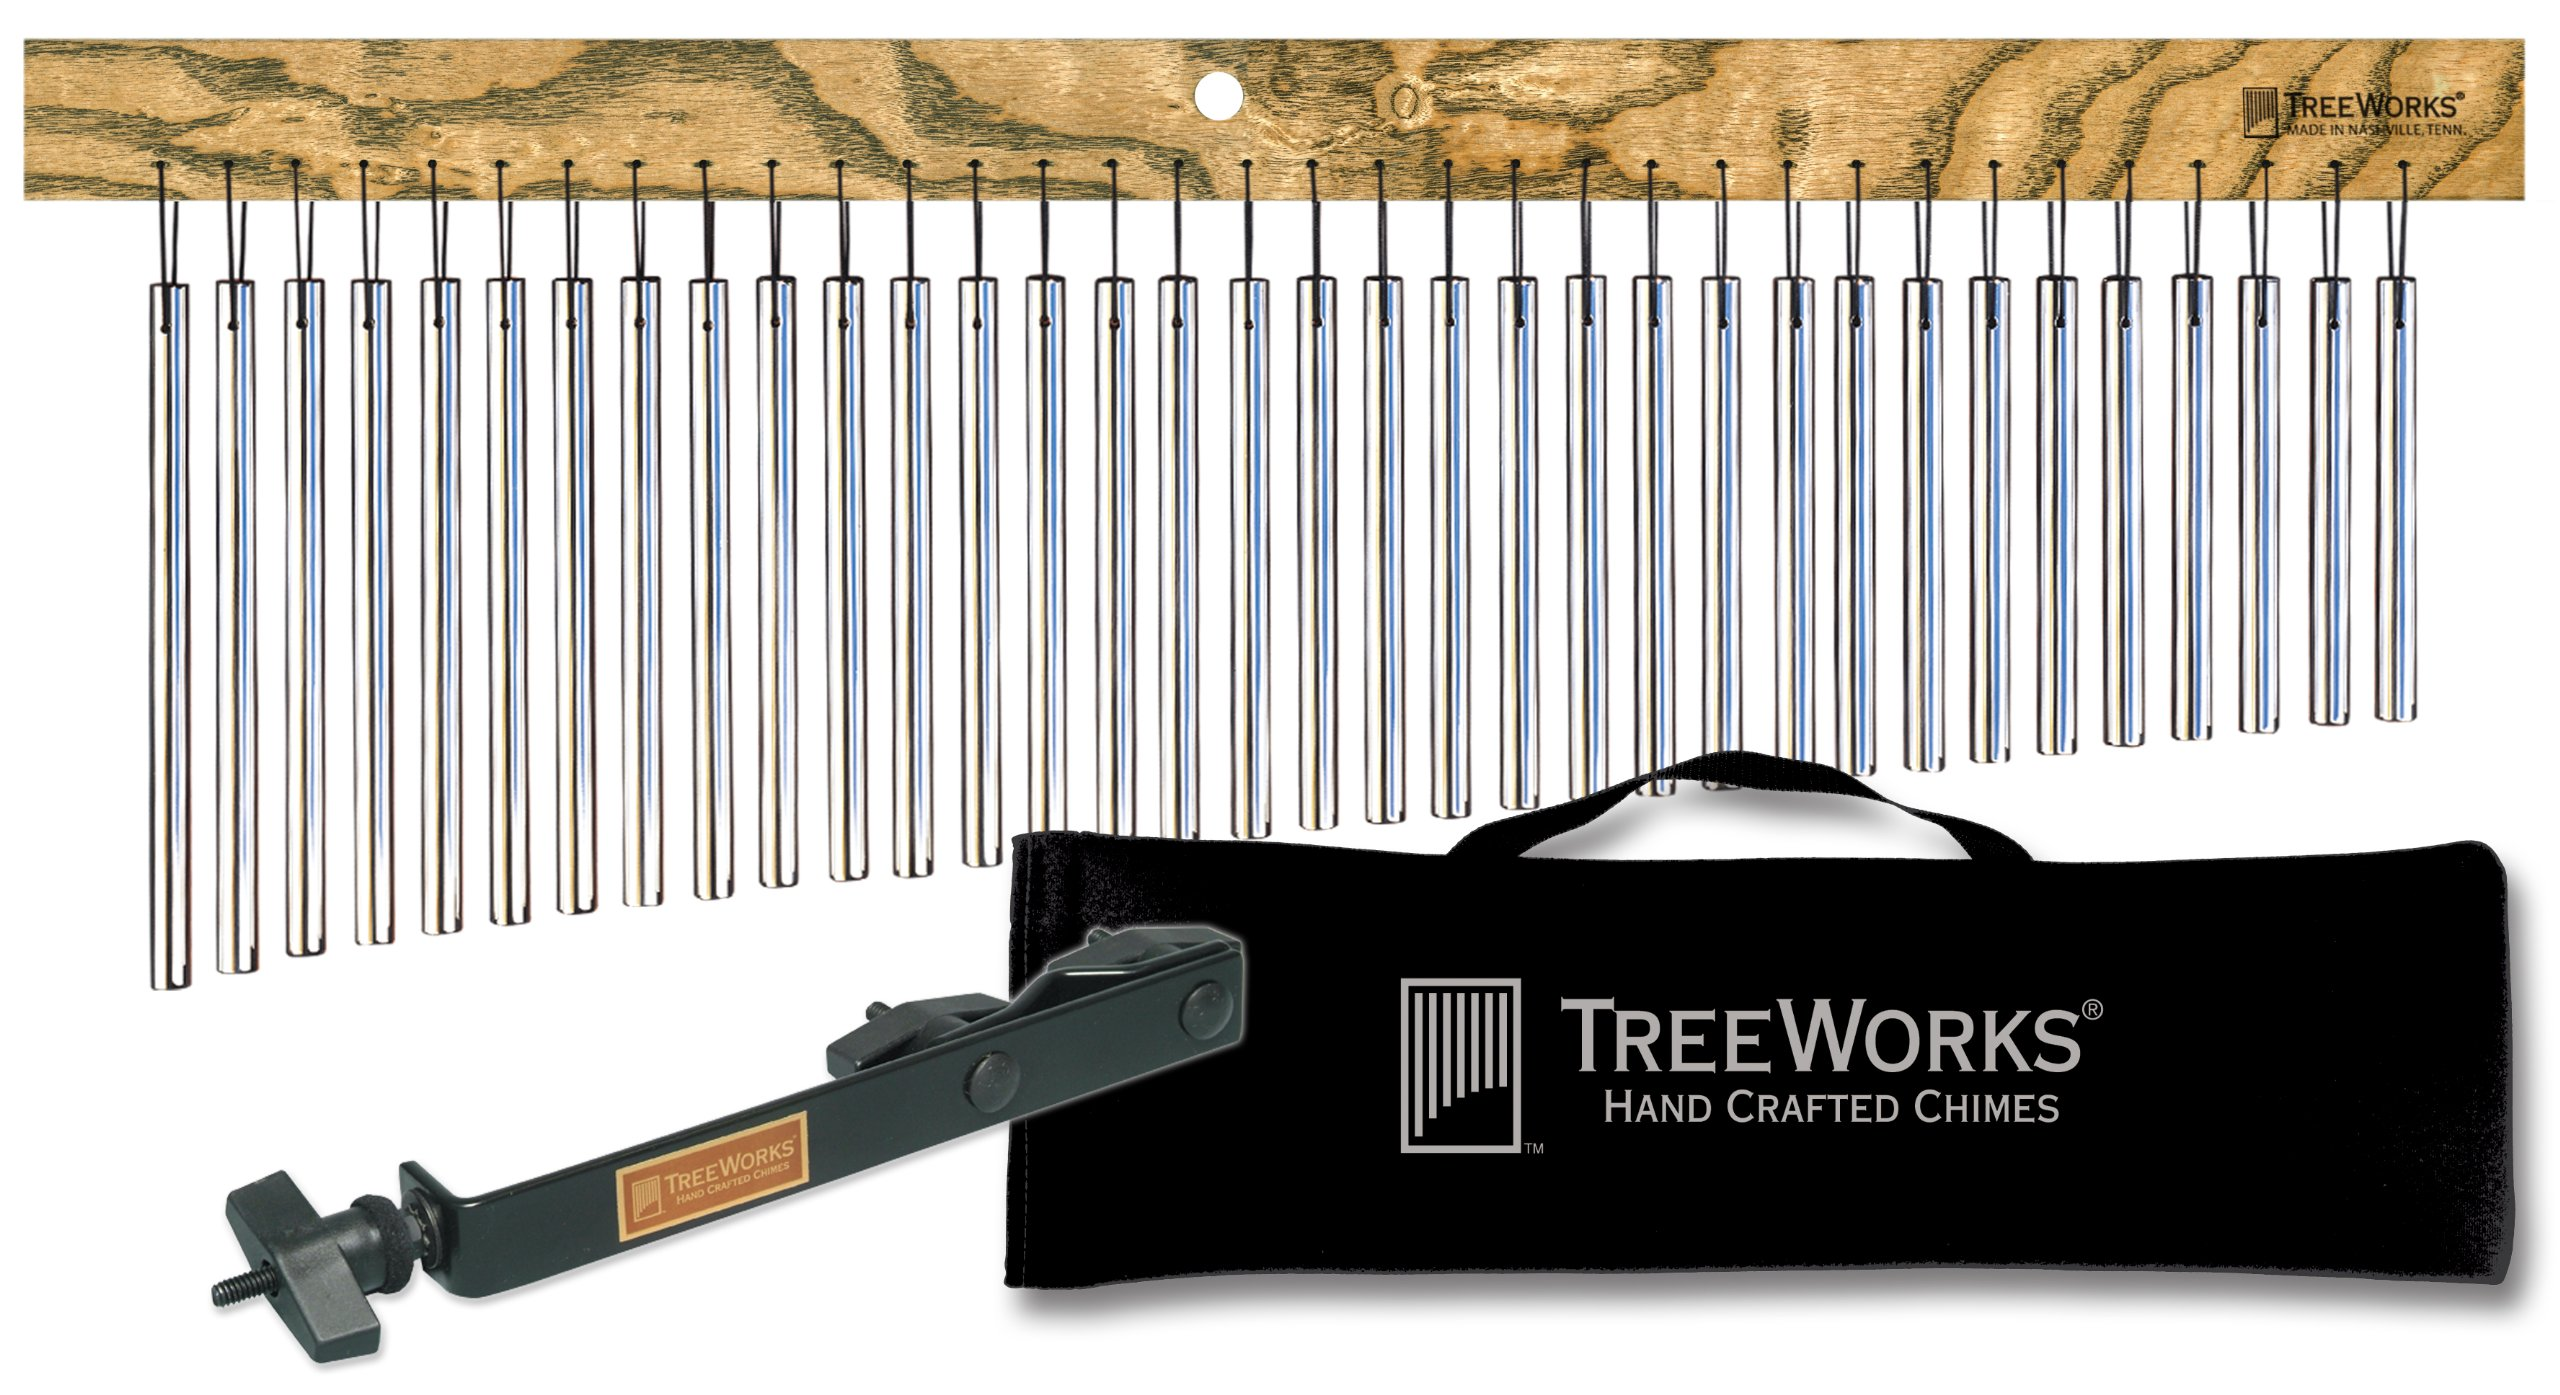 TreeWorks Chimes TRE35KIT Complete Chime Set with Holder and Bag, Made in the U.S.A. by TreeWorks Chimes